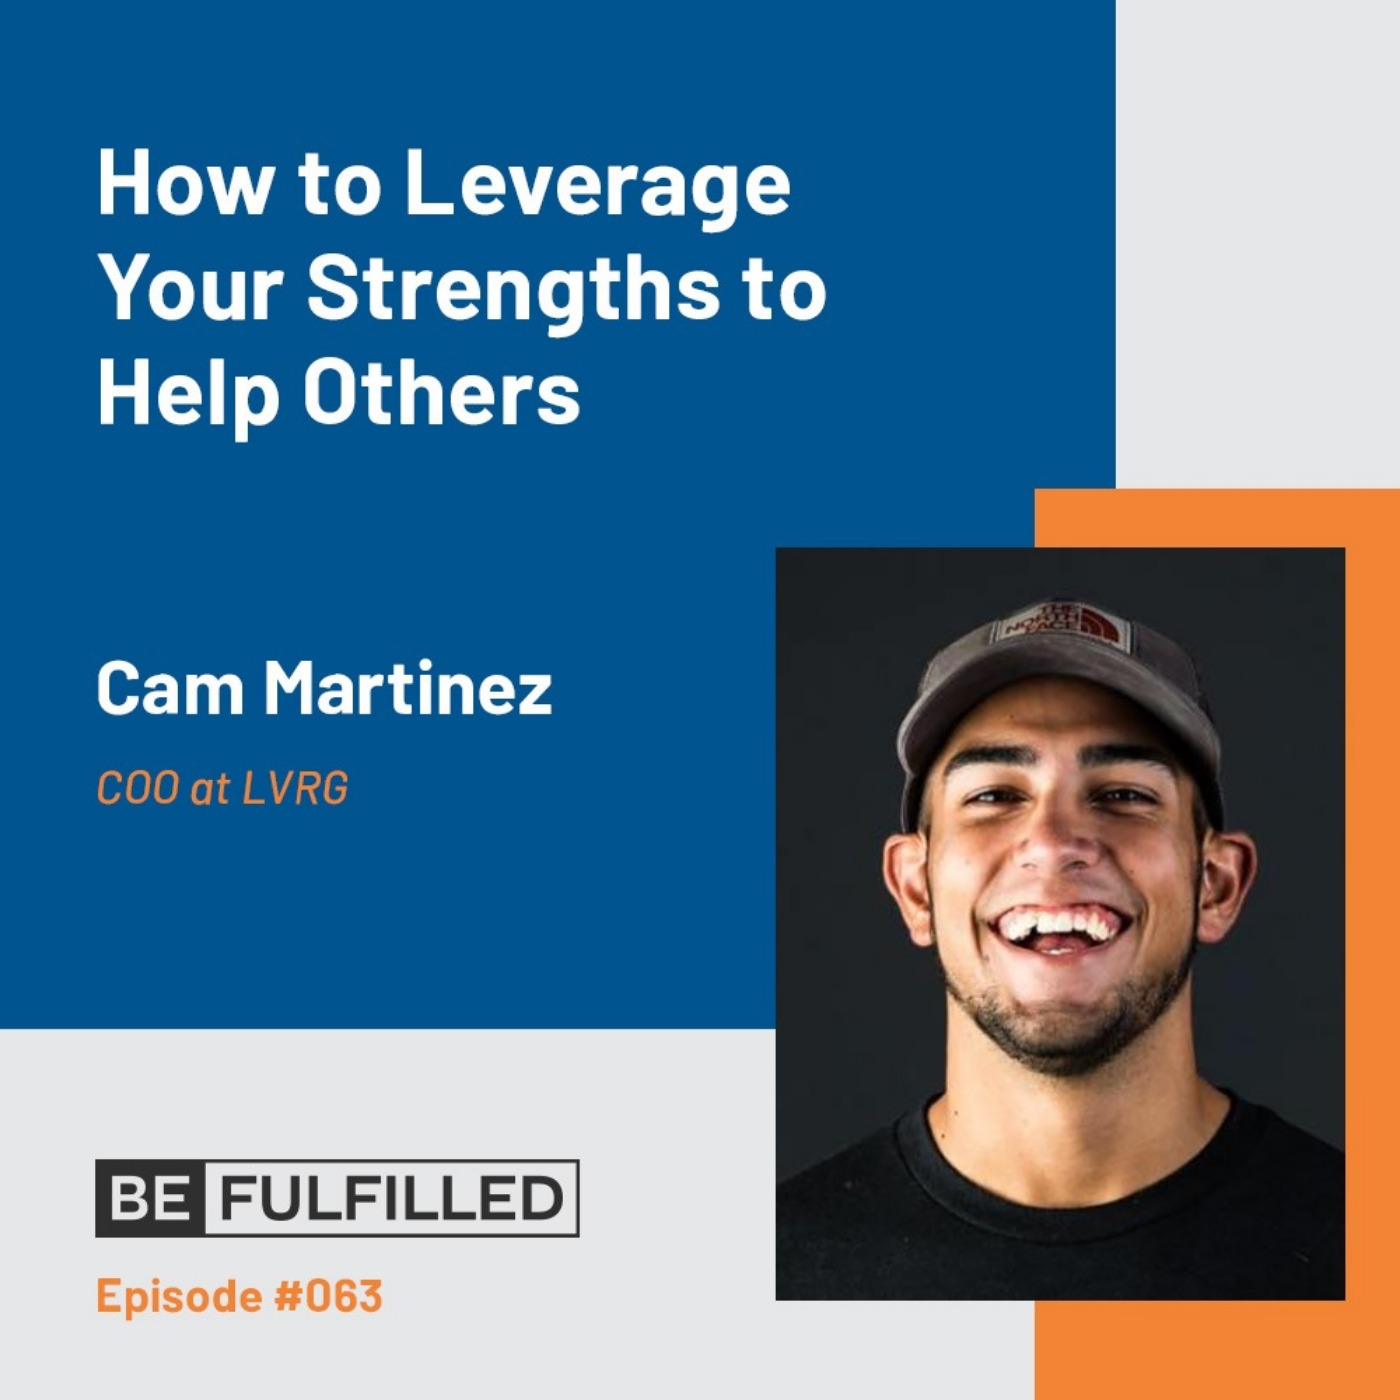 How to Leverage Your Strengths to Help Others - Cam Martinez